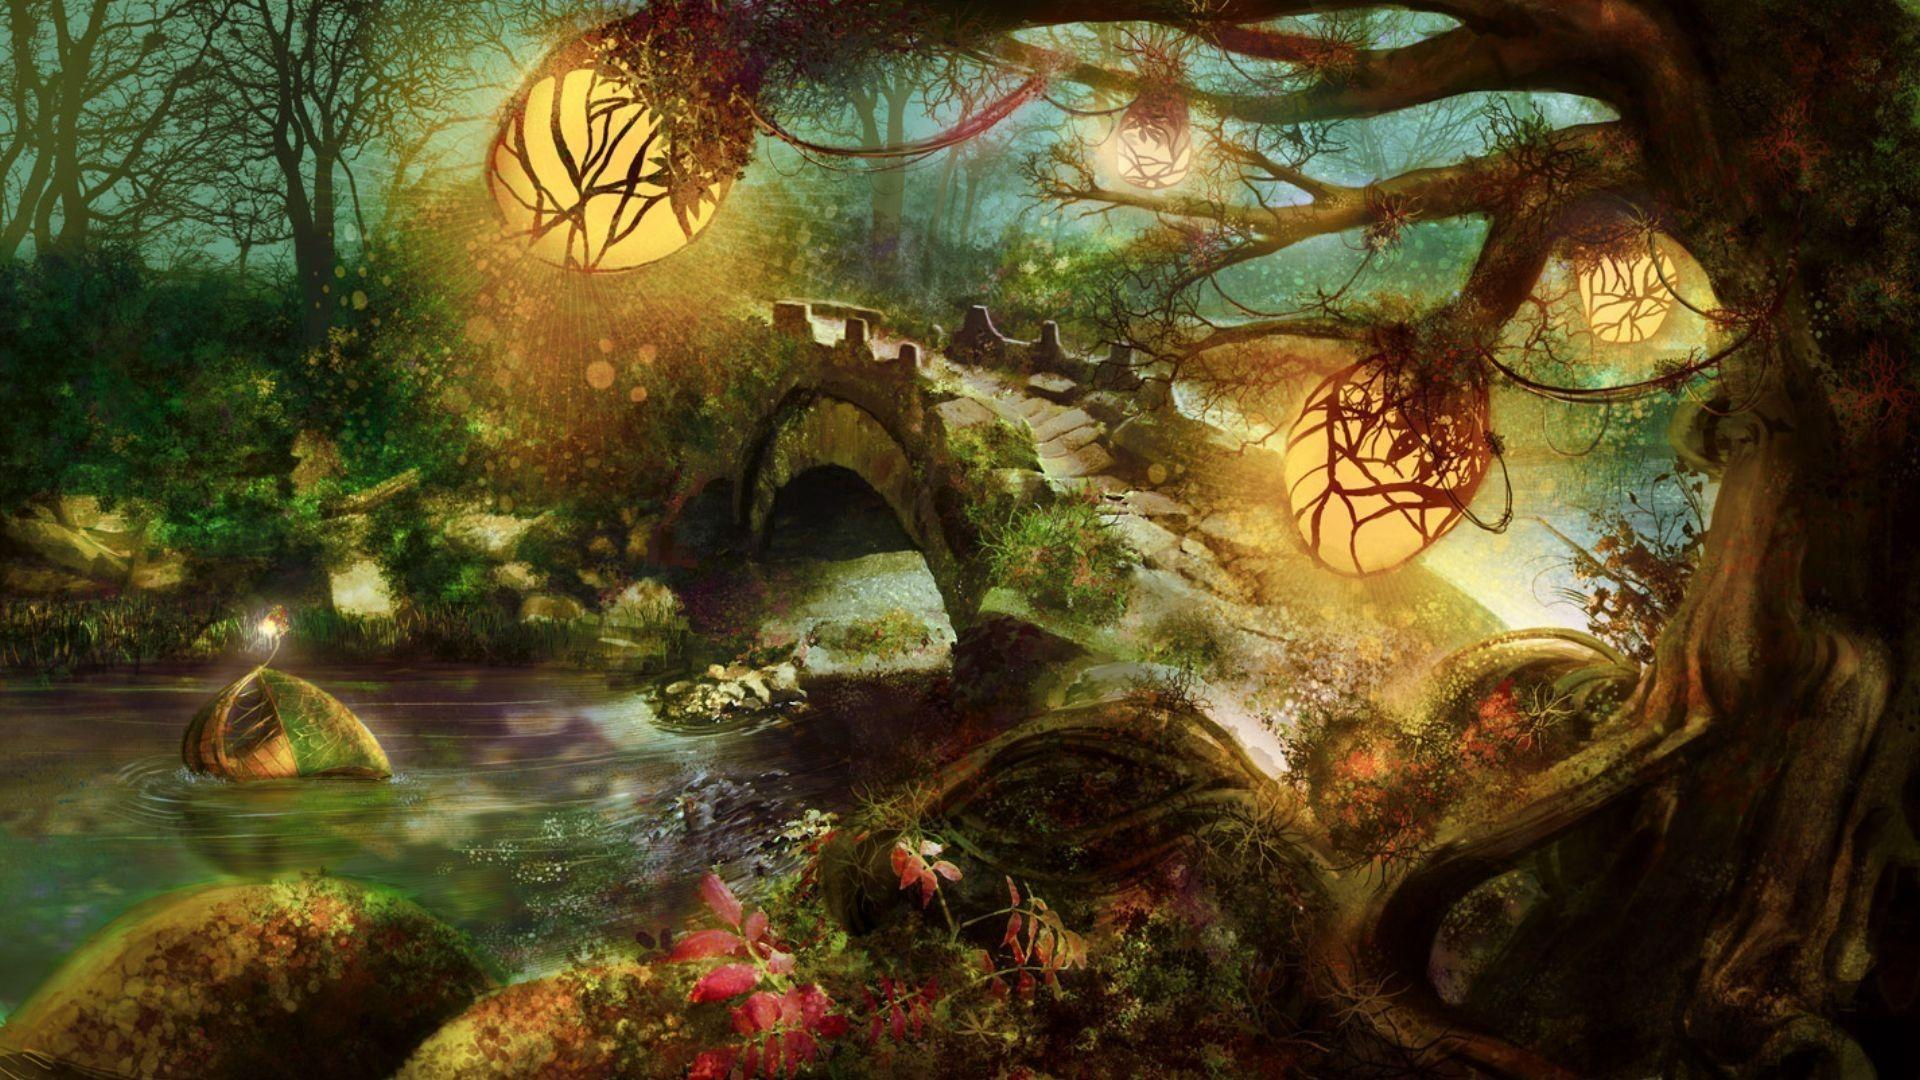 Fantasy forest wallpapers wallpaper cave for El mural pelicula online